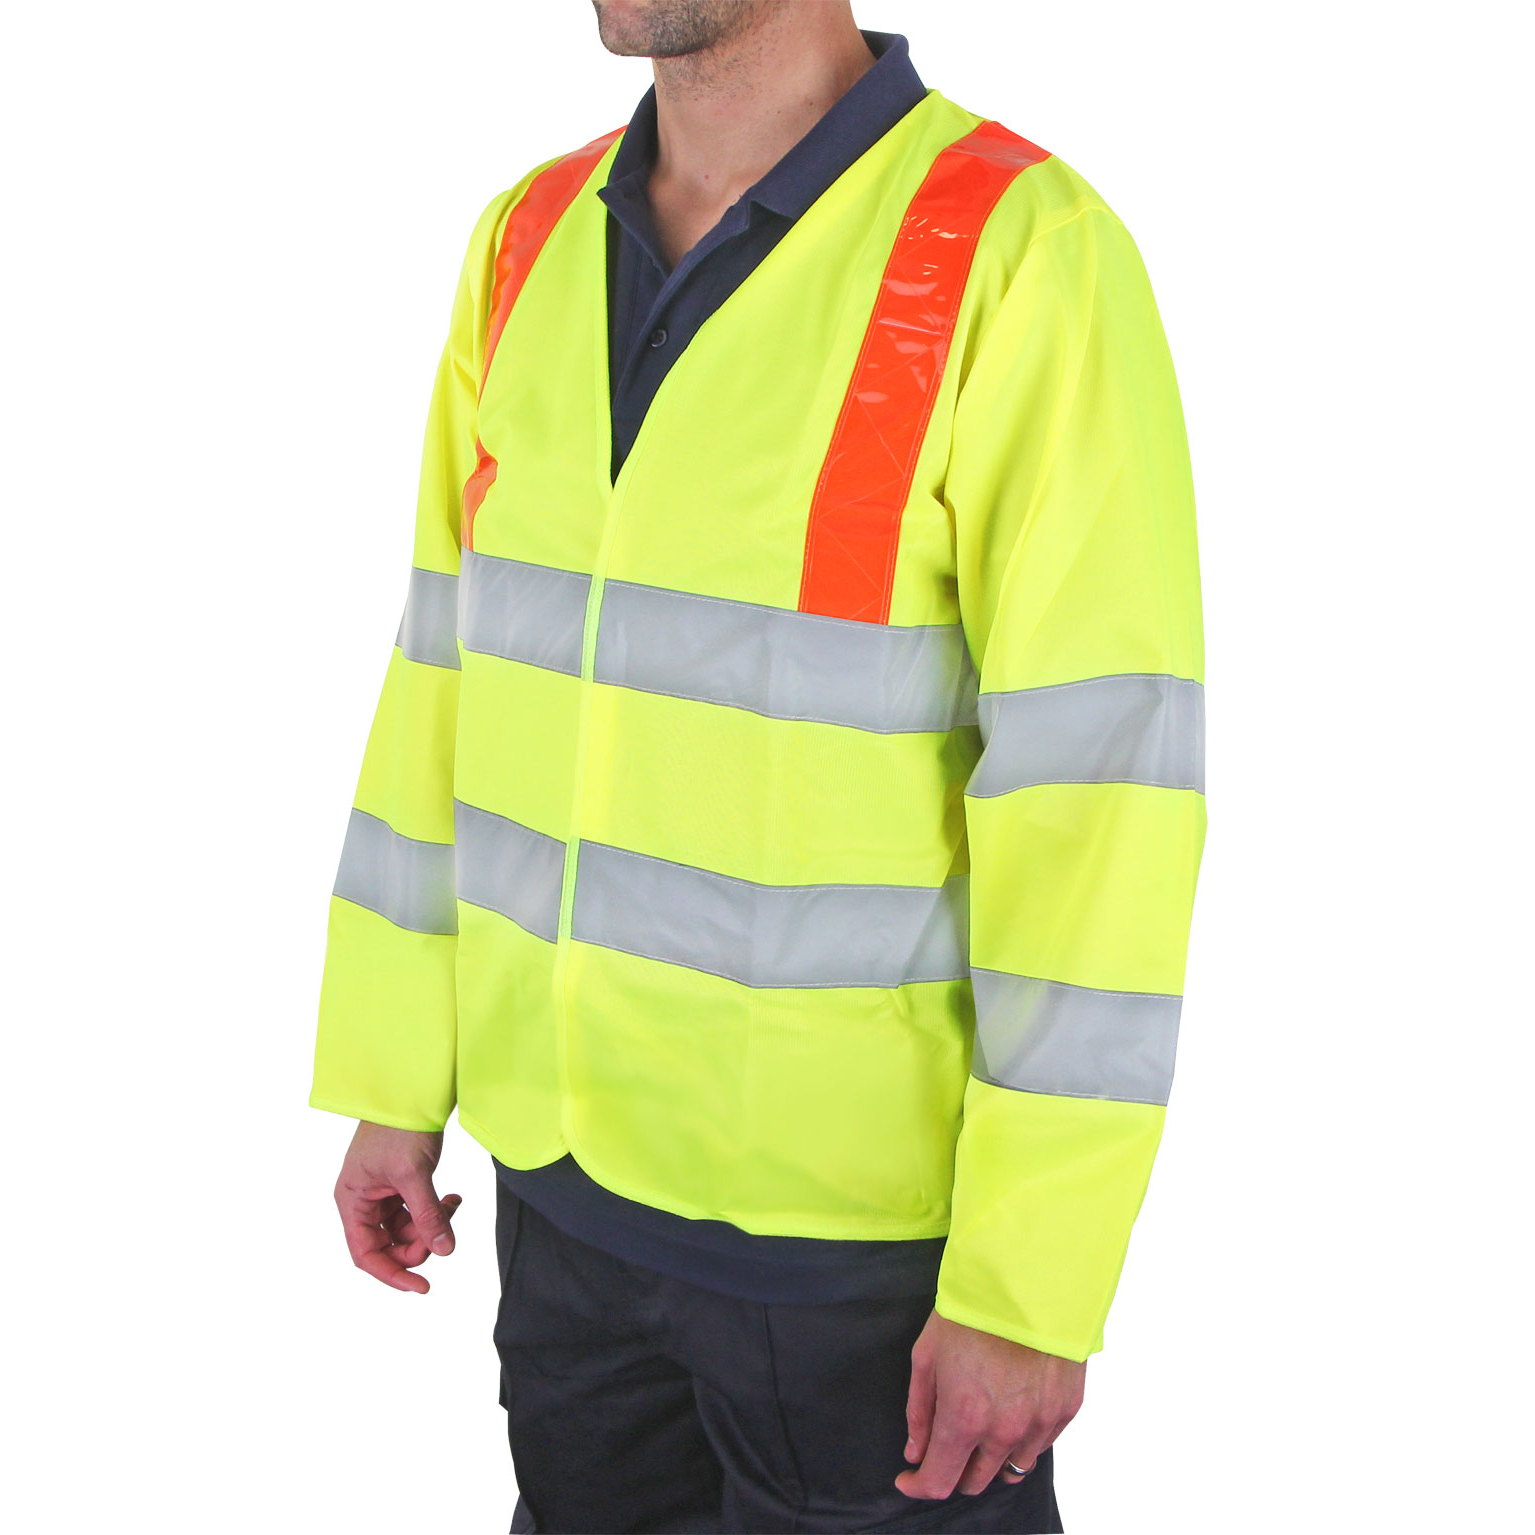 B-Seen High Visibility Long Sleeved Jerkin 5XL Saturn Yellow/Red Ref PKJENG(RT)5XL *Up to 3 Day Leadtime*